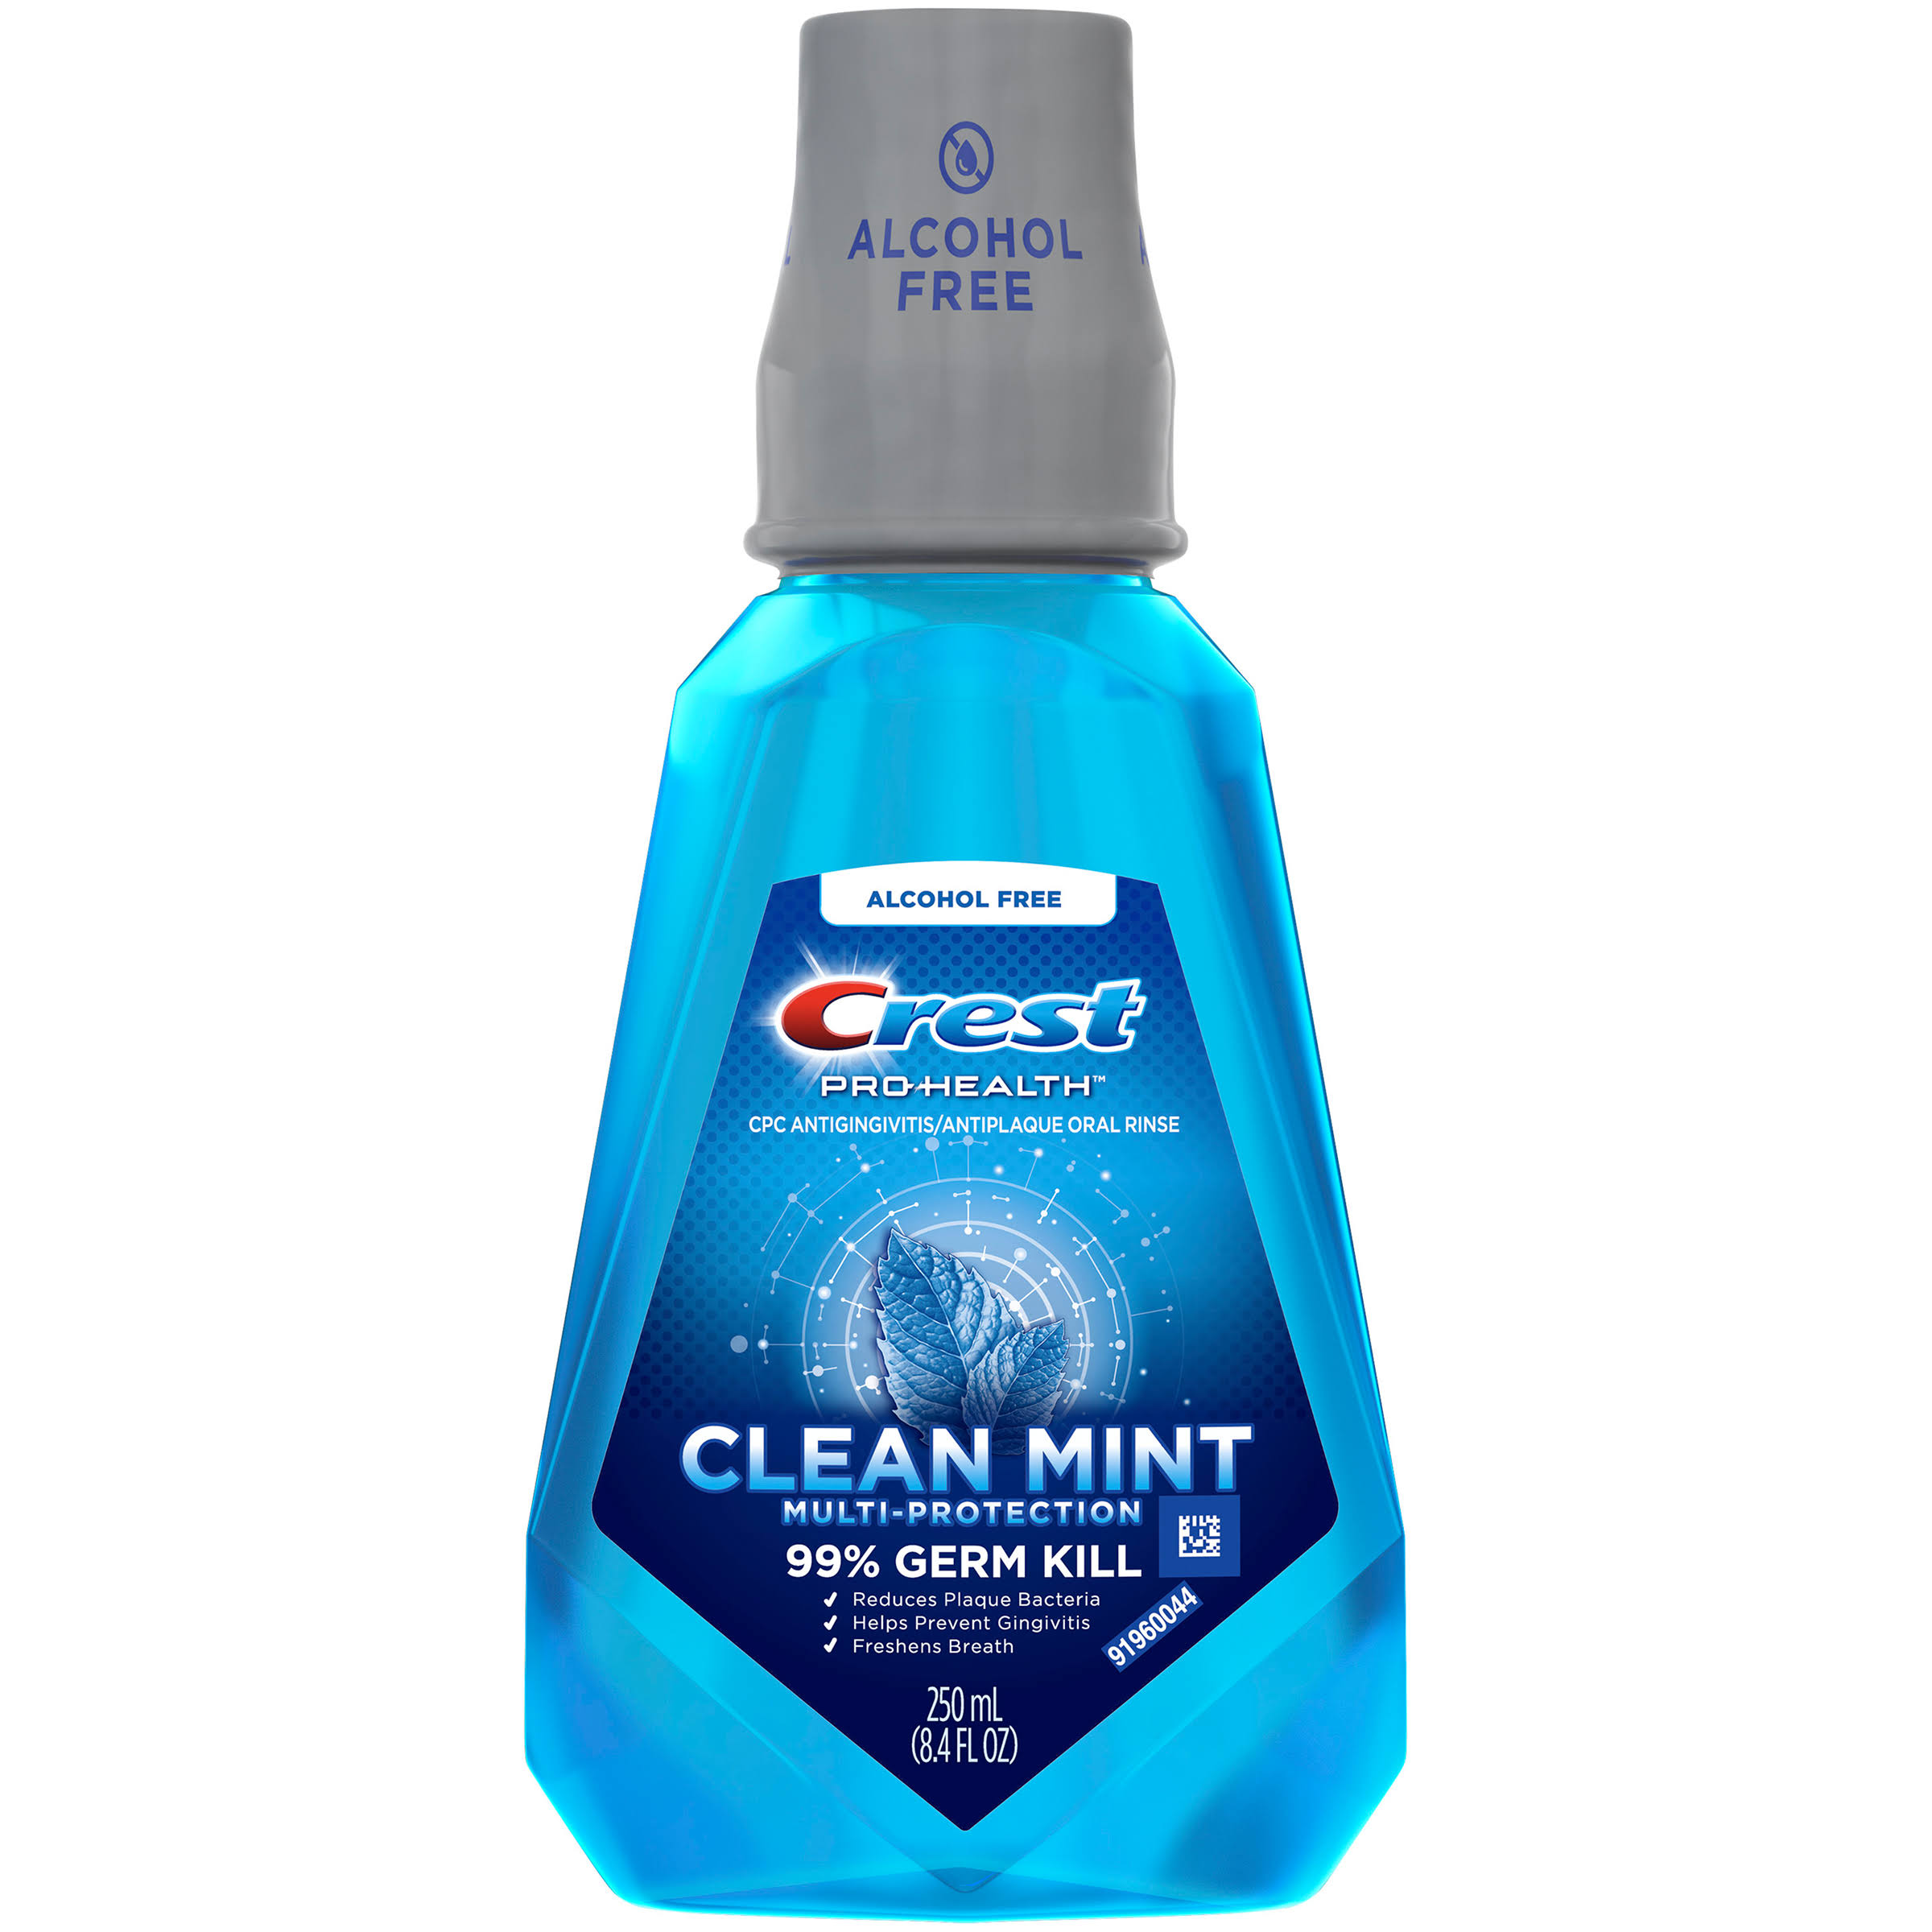 Crest Pro-Health Multi-Protection CPC Antigingivitis & Antiplaque Oral Mouthwash - Clean Mint, 8.4oz